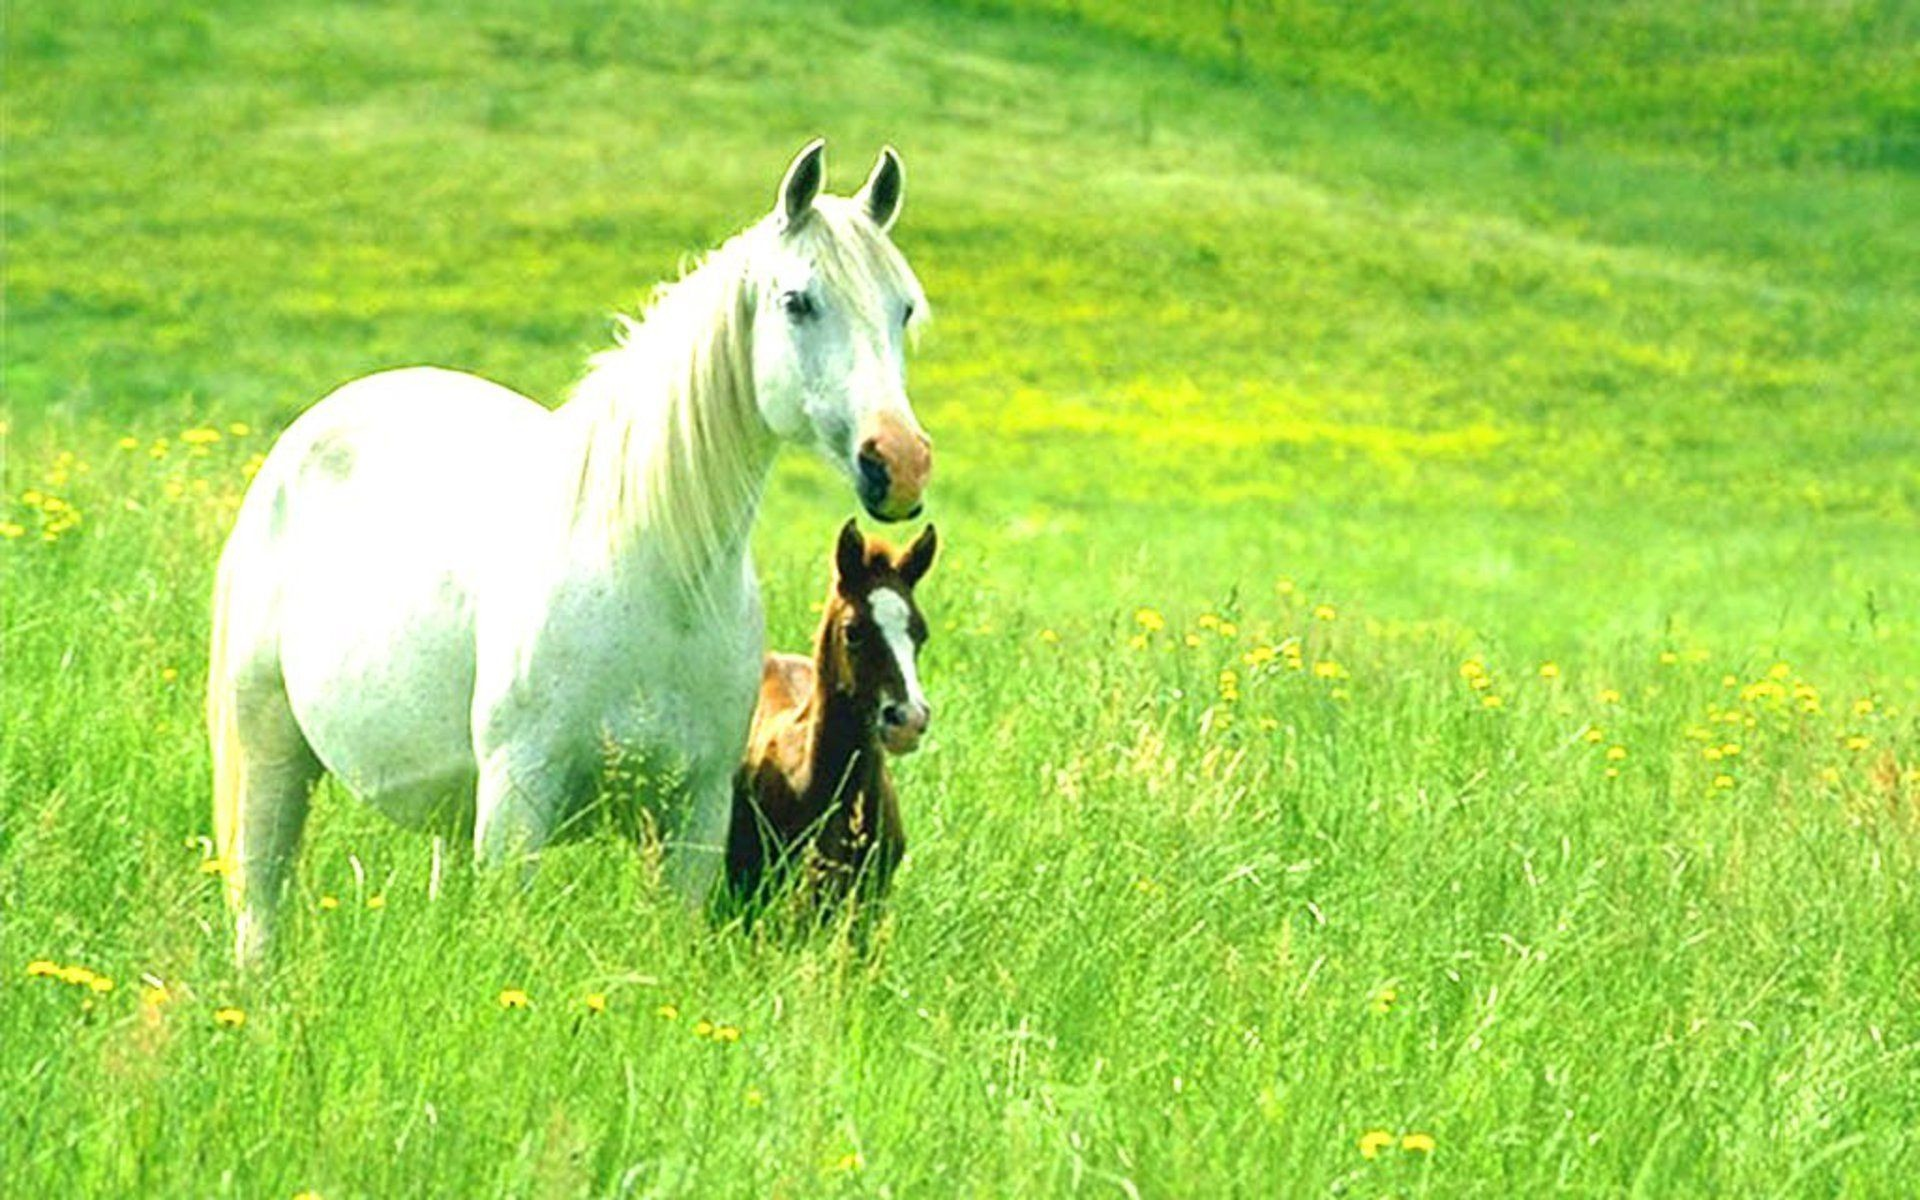 Beautiful horses pictures wallpapers the best of pictures 2017 horse wallpapers hd quality backgrounds d voltagebd Image collections